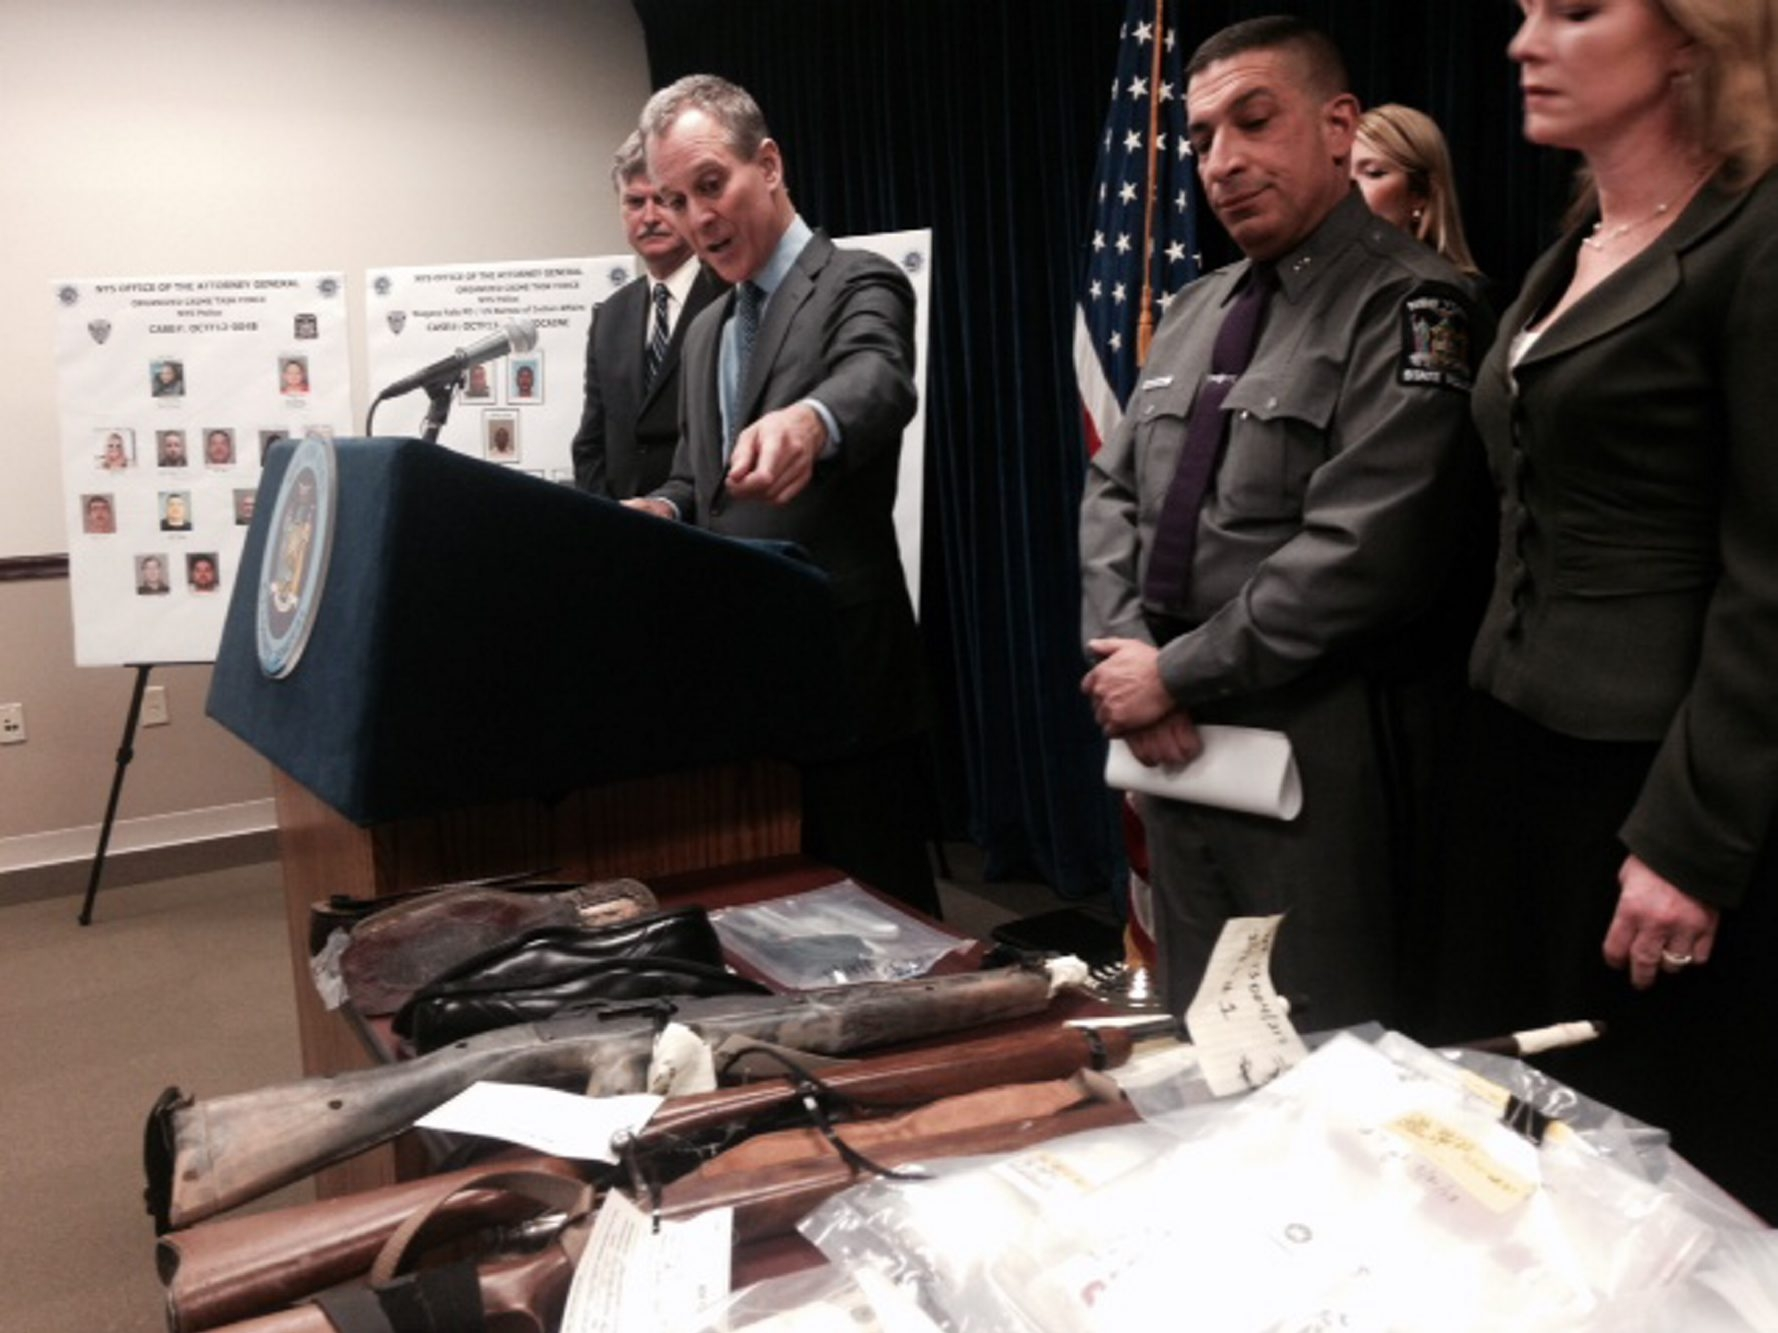 State Attorney General Eric Schneiderman gestures to a table of evidence during a news conference Tuesday announcing a major drug bust.